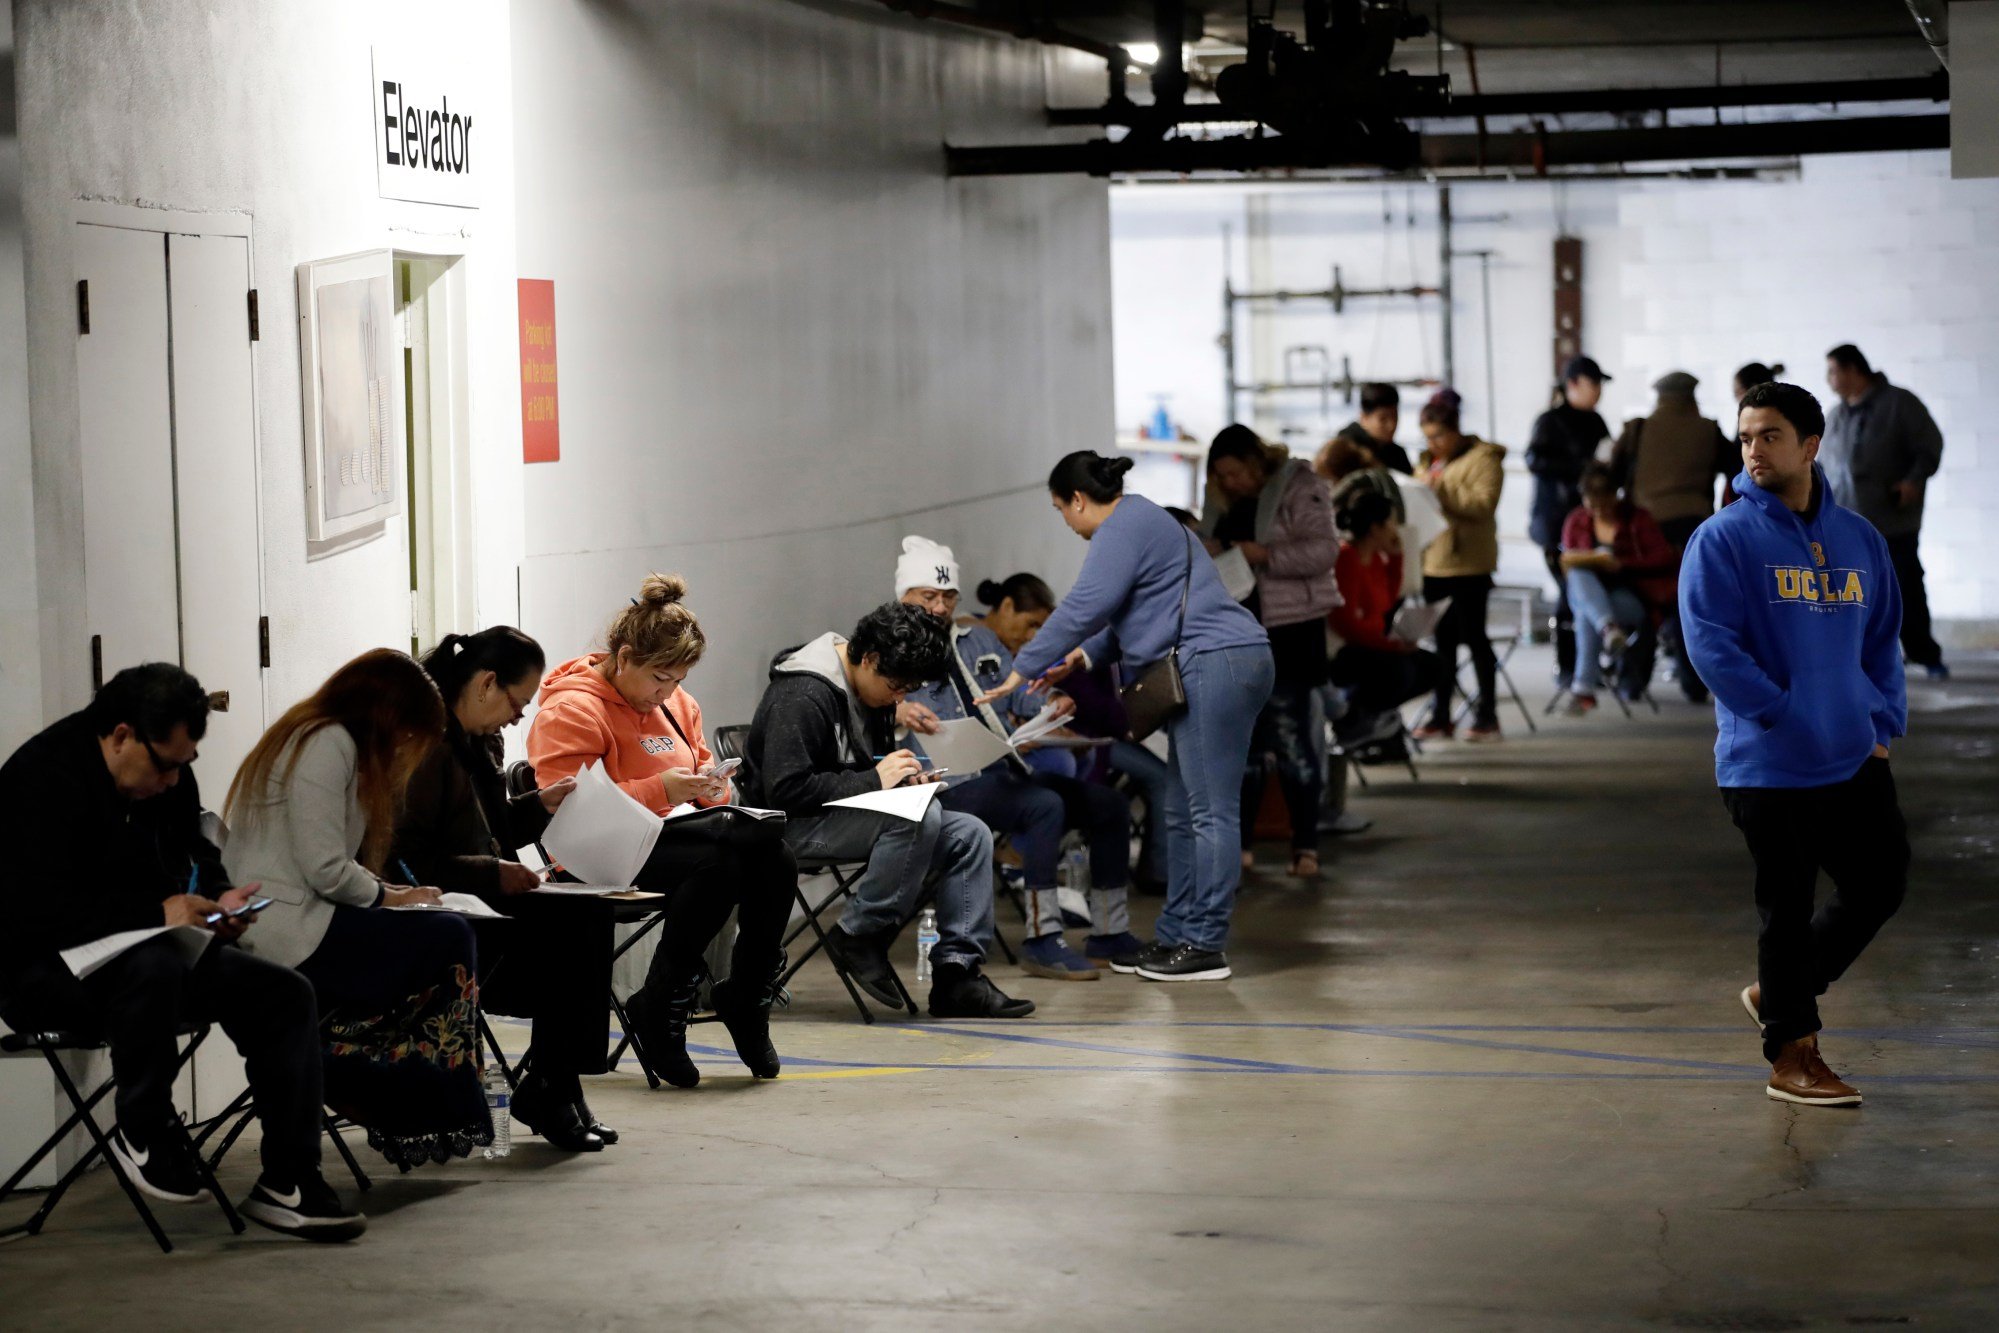 In this March 13, 2020 file photo, unionized hospitality workers wait in line in a basement garage to apply for unemployment benefits at the Hospitality Training Academy in Los Angeles. California's unemployment rate continued to climb in May, reaching 16.3% as businesses continued to lay people off because of a state-at-home order aimed at slowing the spread of the coronavirus that has wrecked the state's economy. (AP Photo/Marcio Jose Sanchez, File)